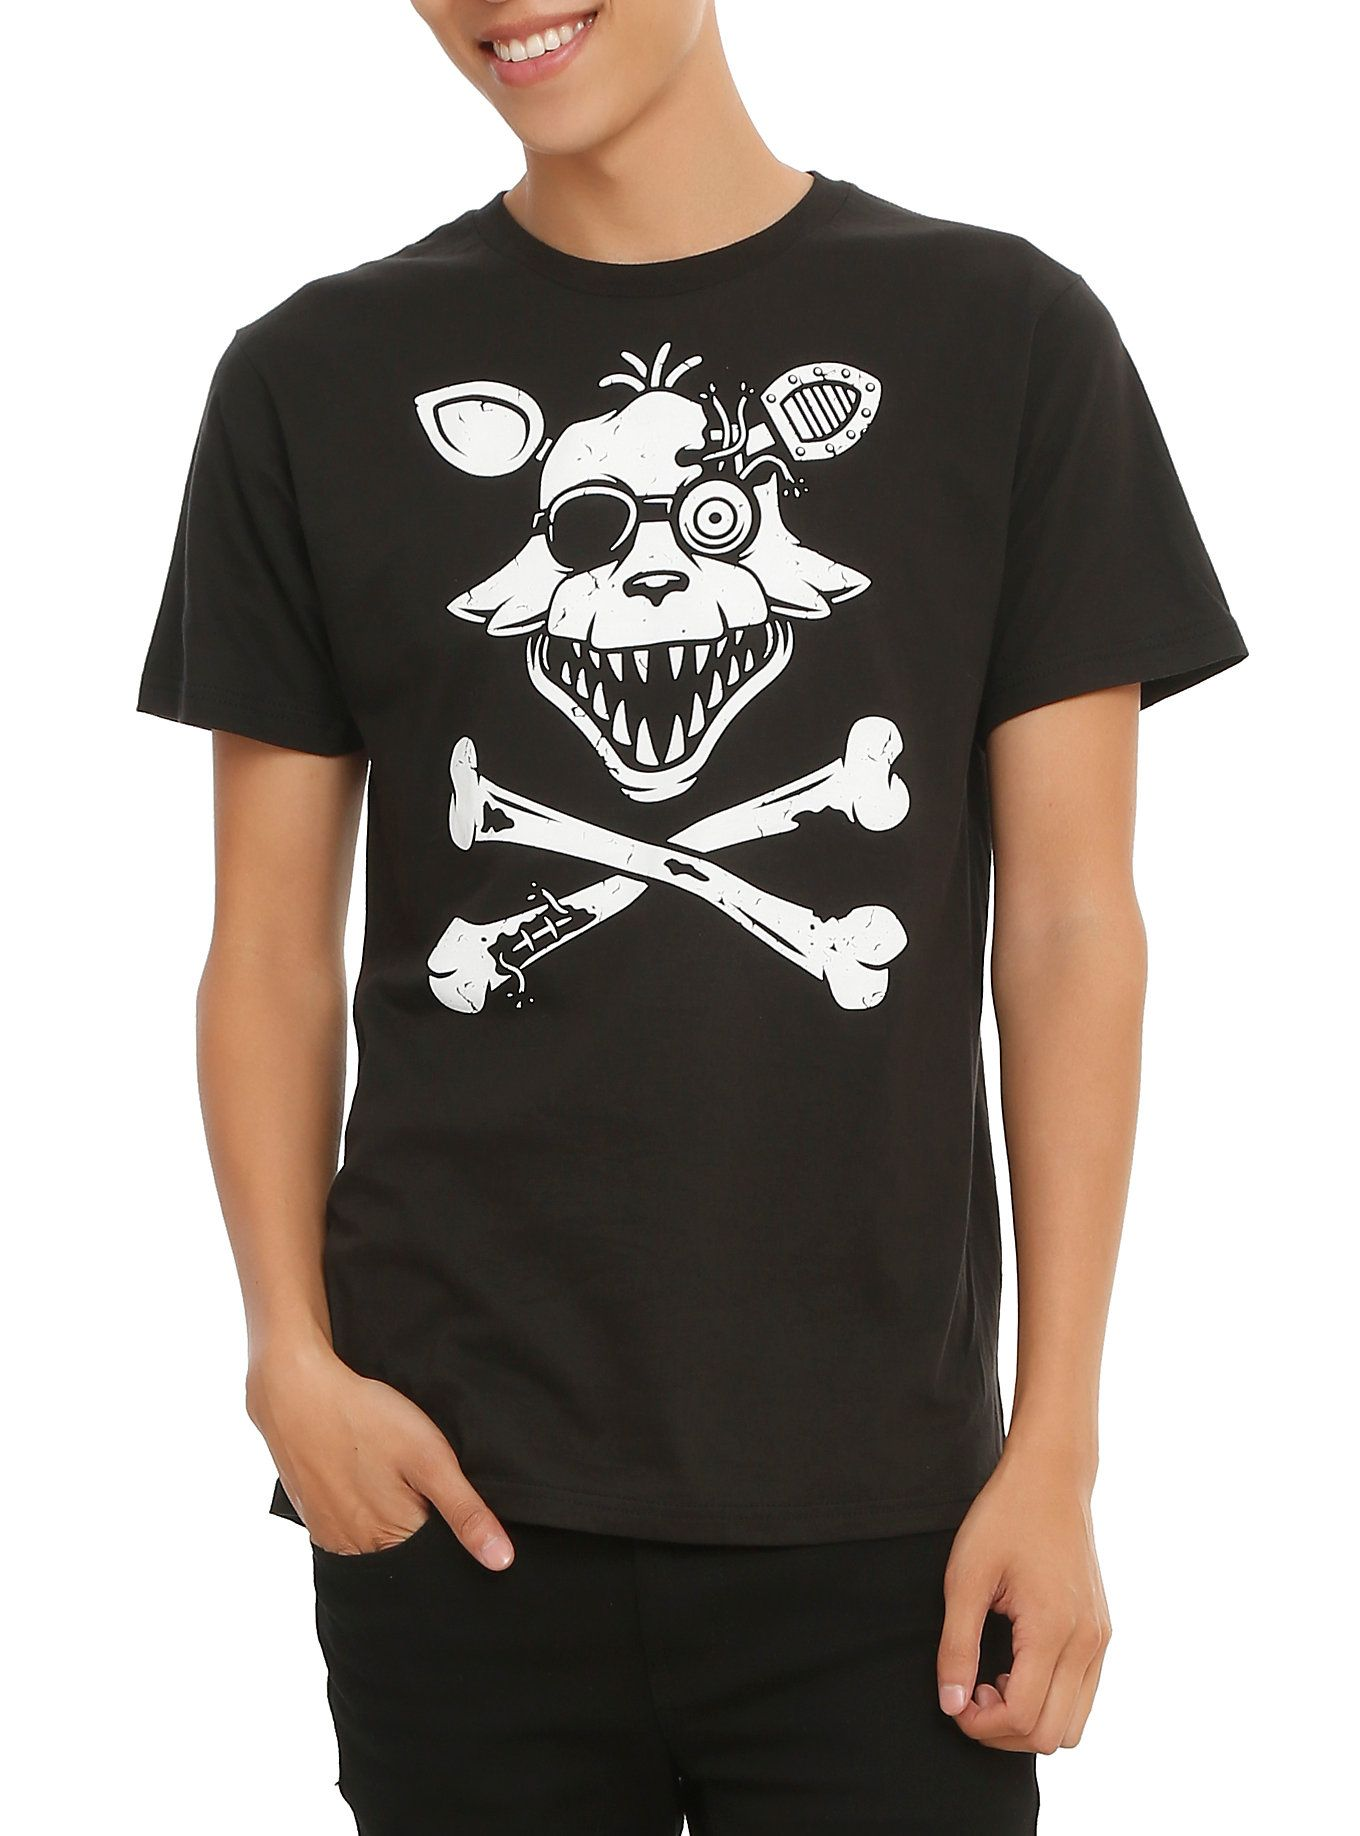 Five Nights At Freddy's Foxy Crossbones T-Shirt | Hot Topic